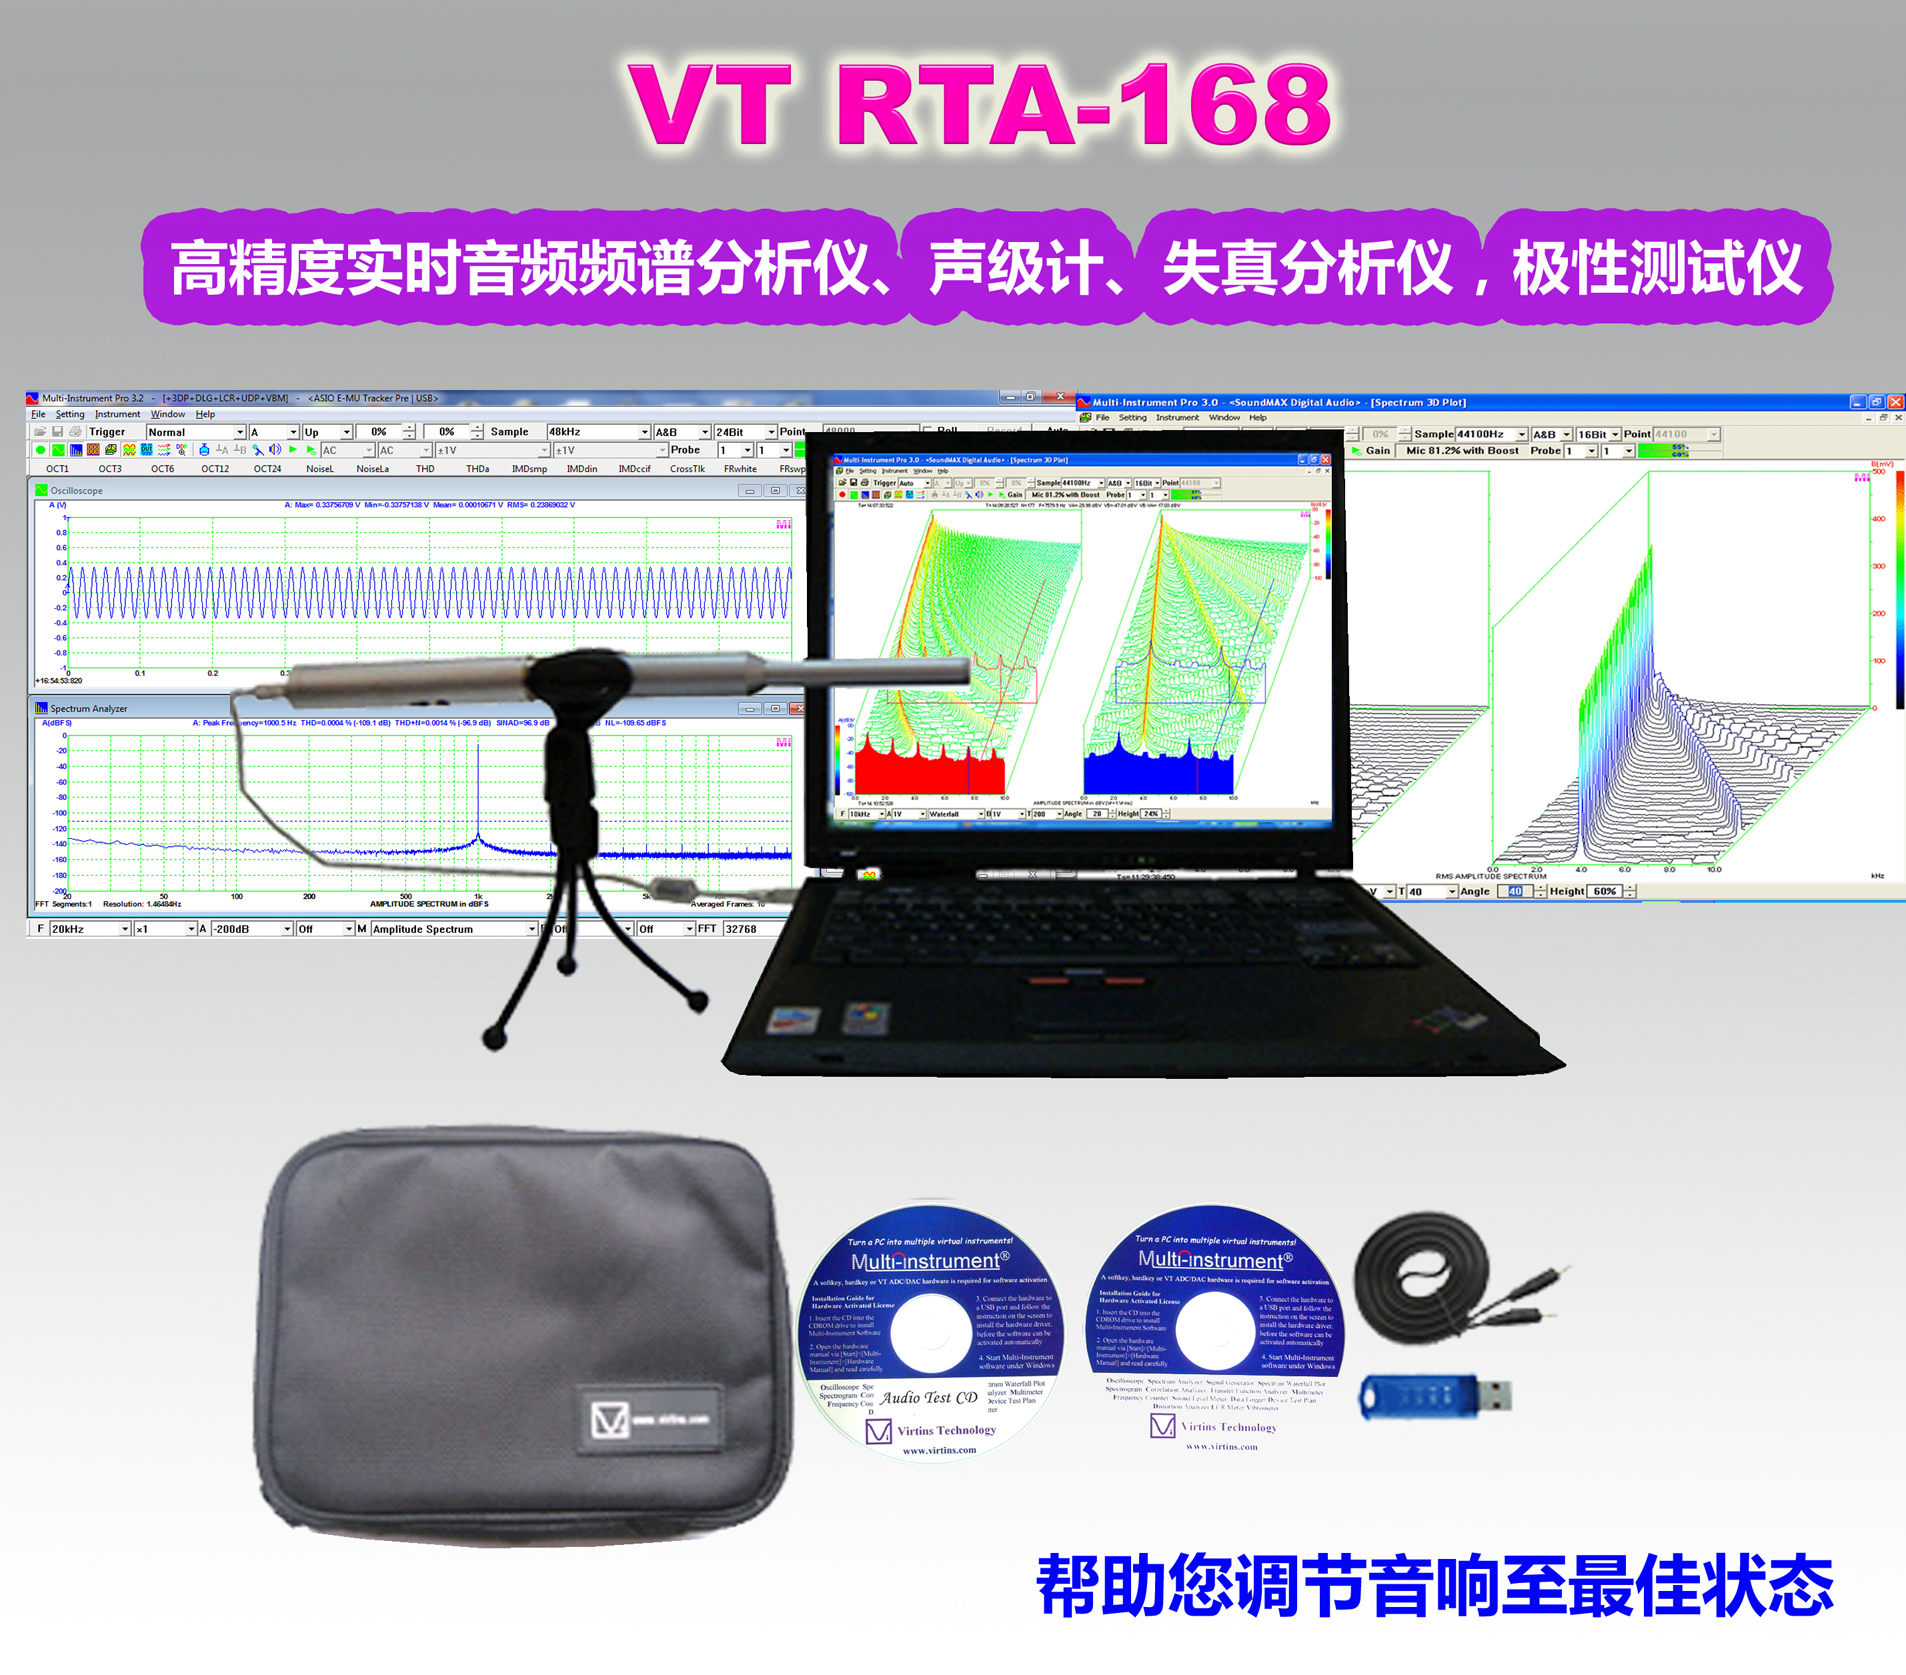 High Precision Real-time Audio Analyser (Audio Testing, Sound Level Meter, Oscilloscope) Noise Meter RTA-168B